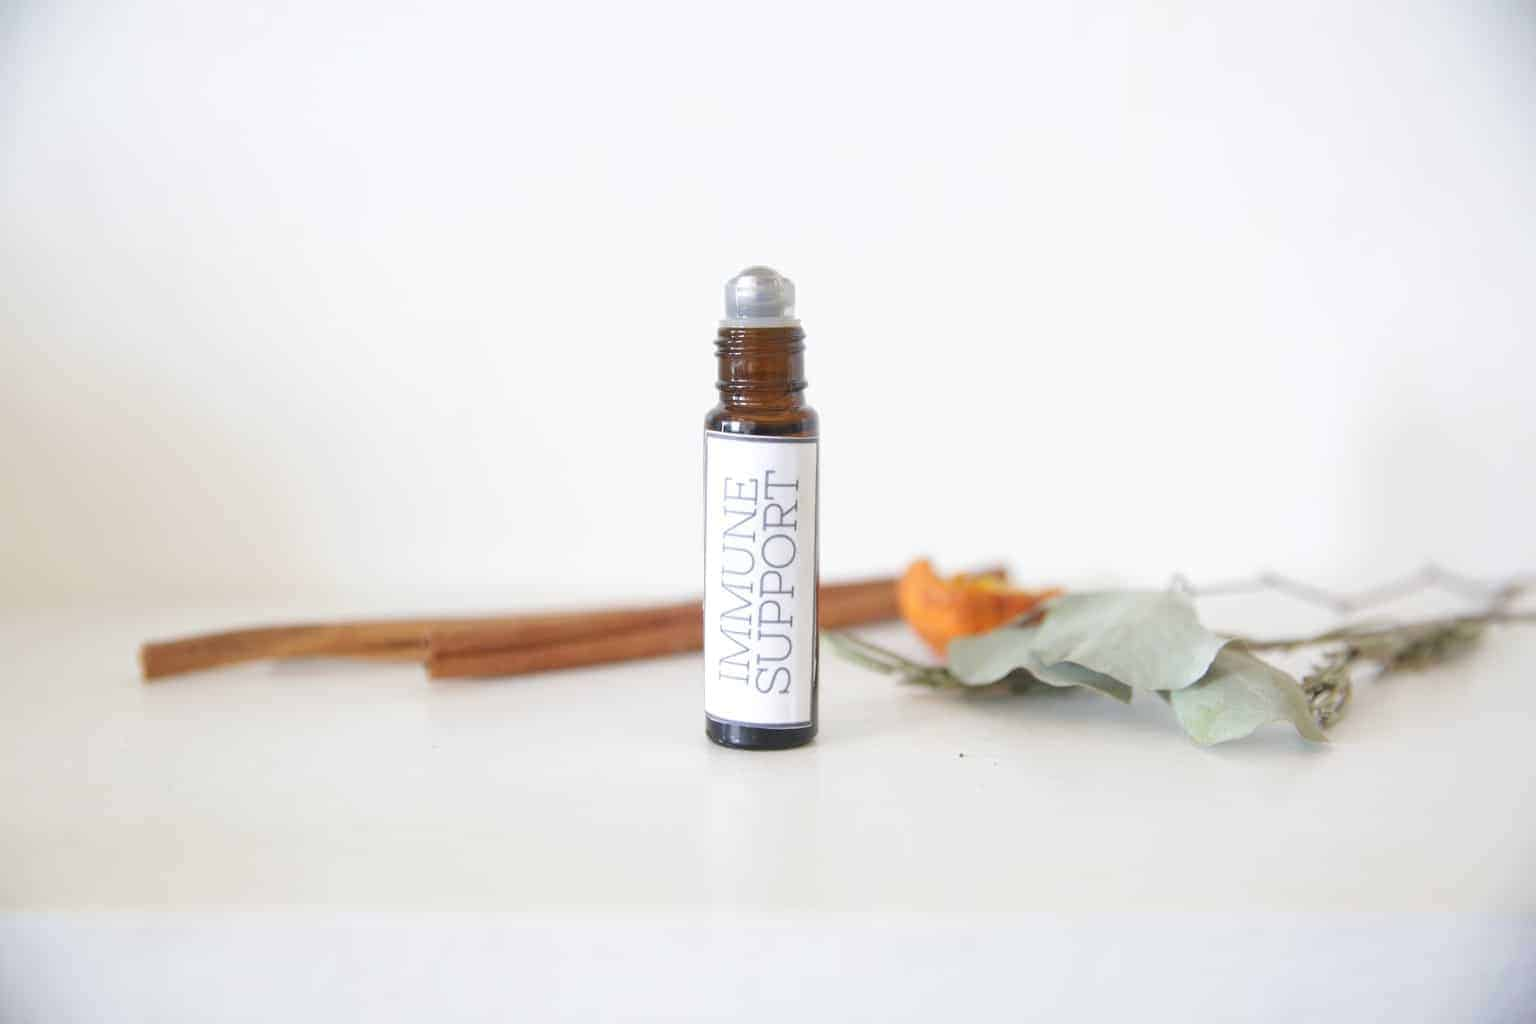 IMMUNE SUPPORT ROLLERBALL BOTTLE WITH CINNAMON STICKS ON WHITE MARBLE